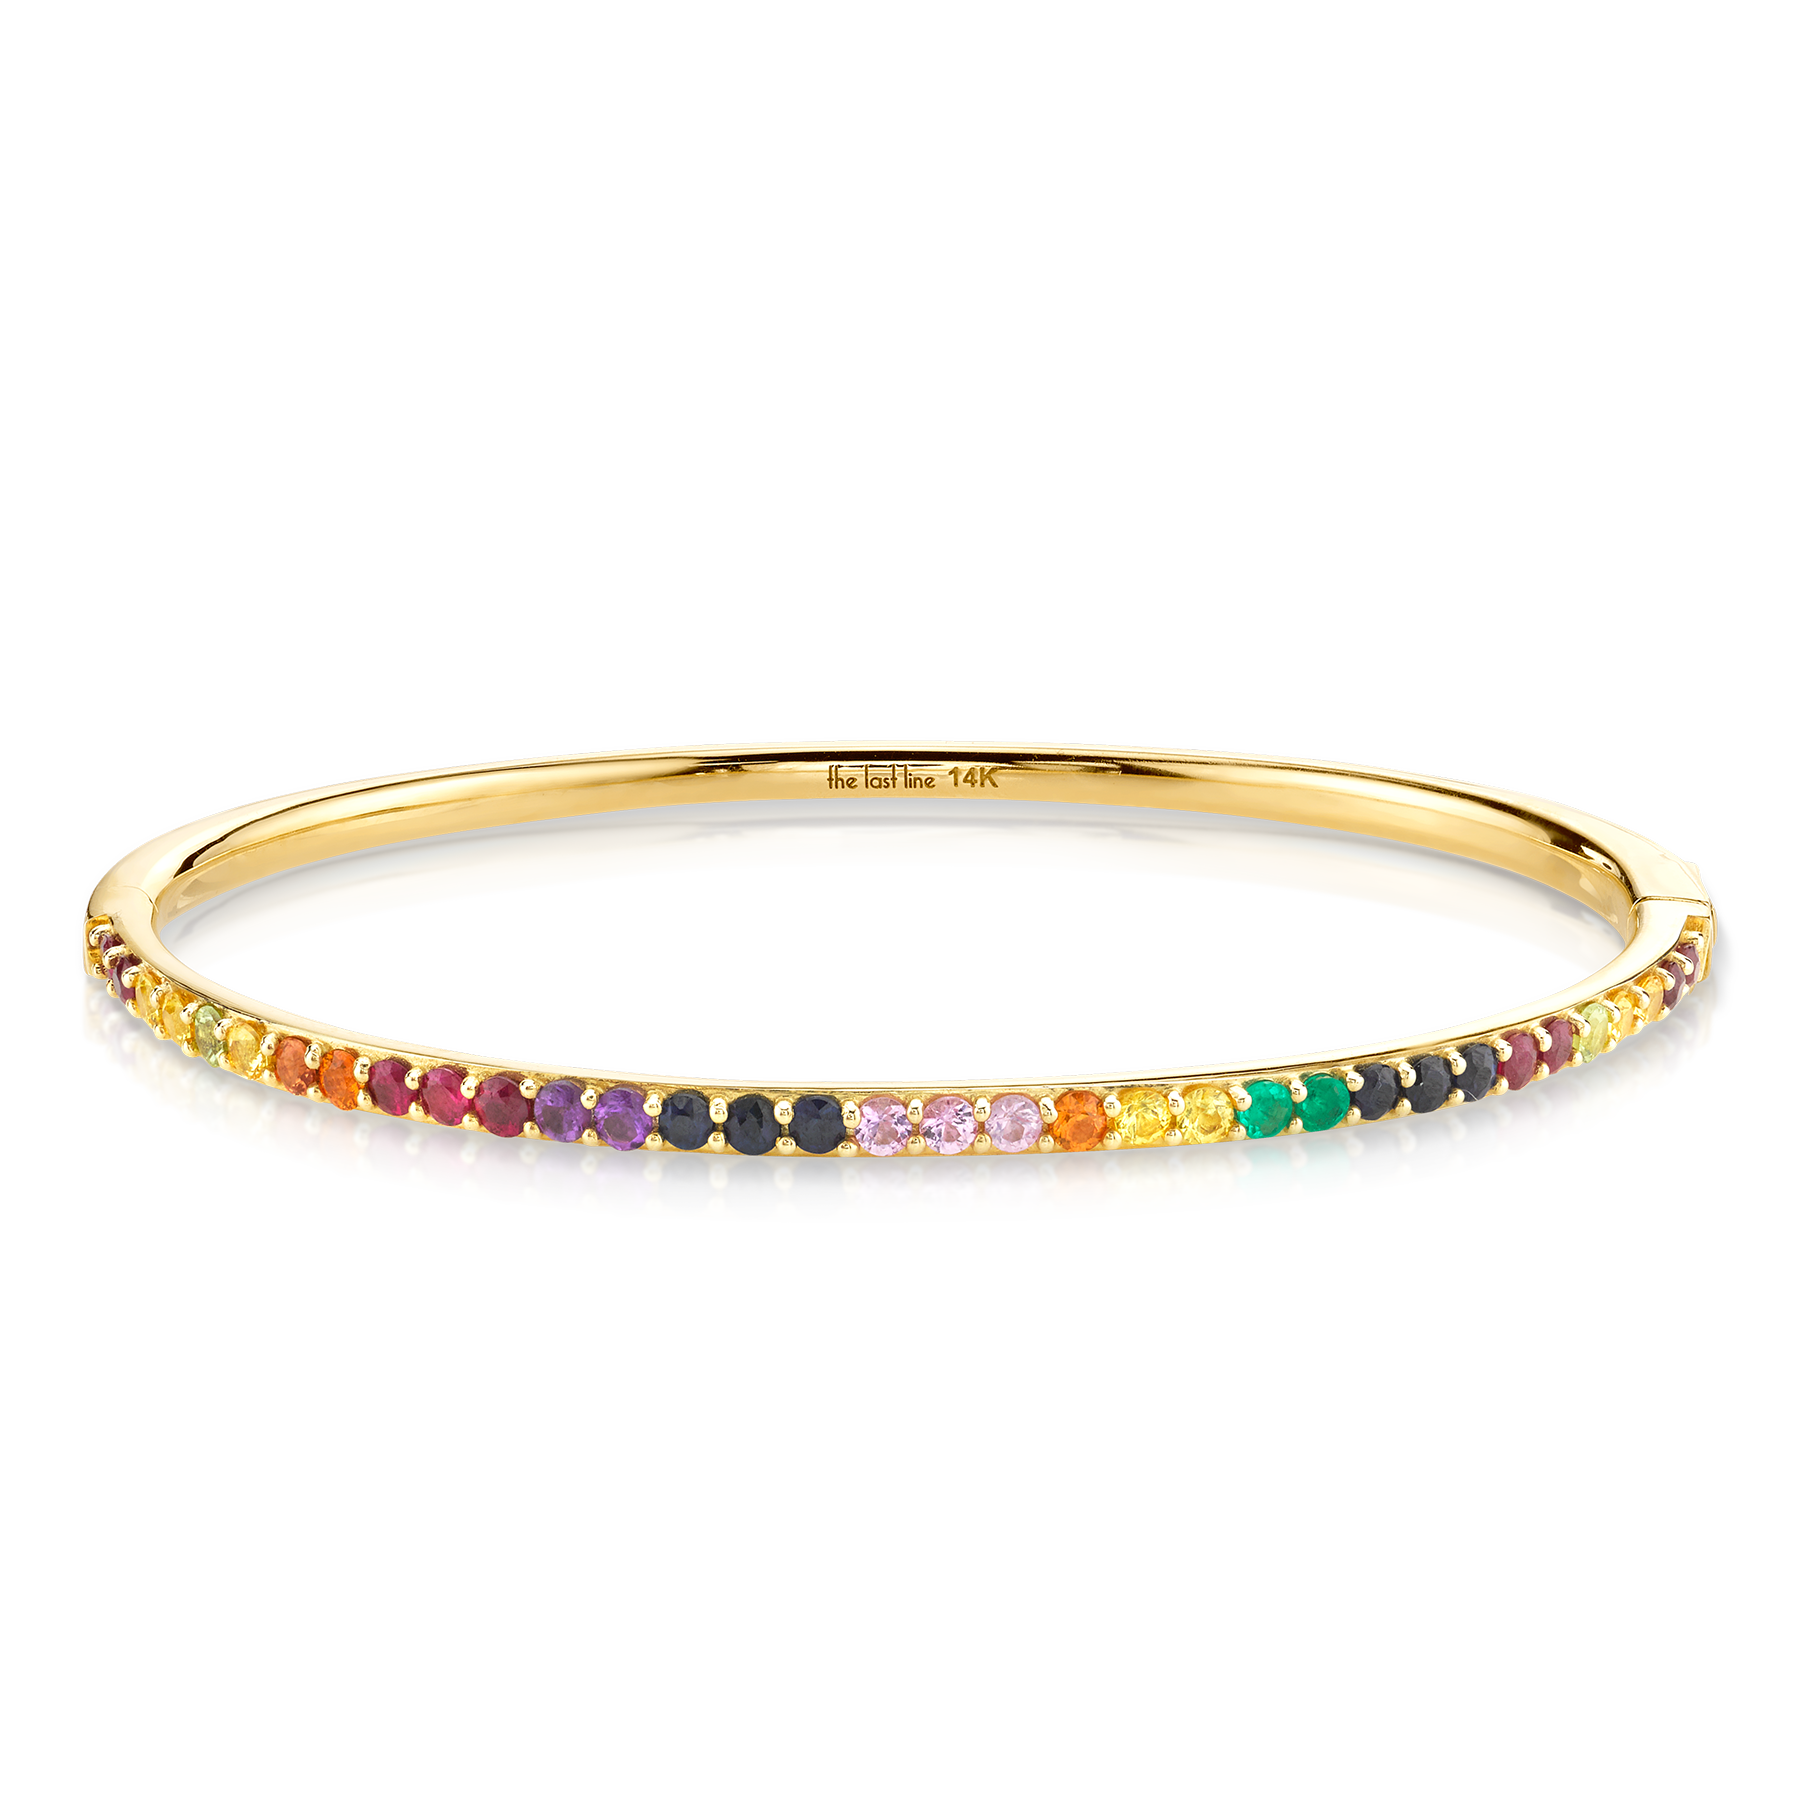 RAINBOW HINGE BANGLE